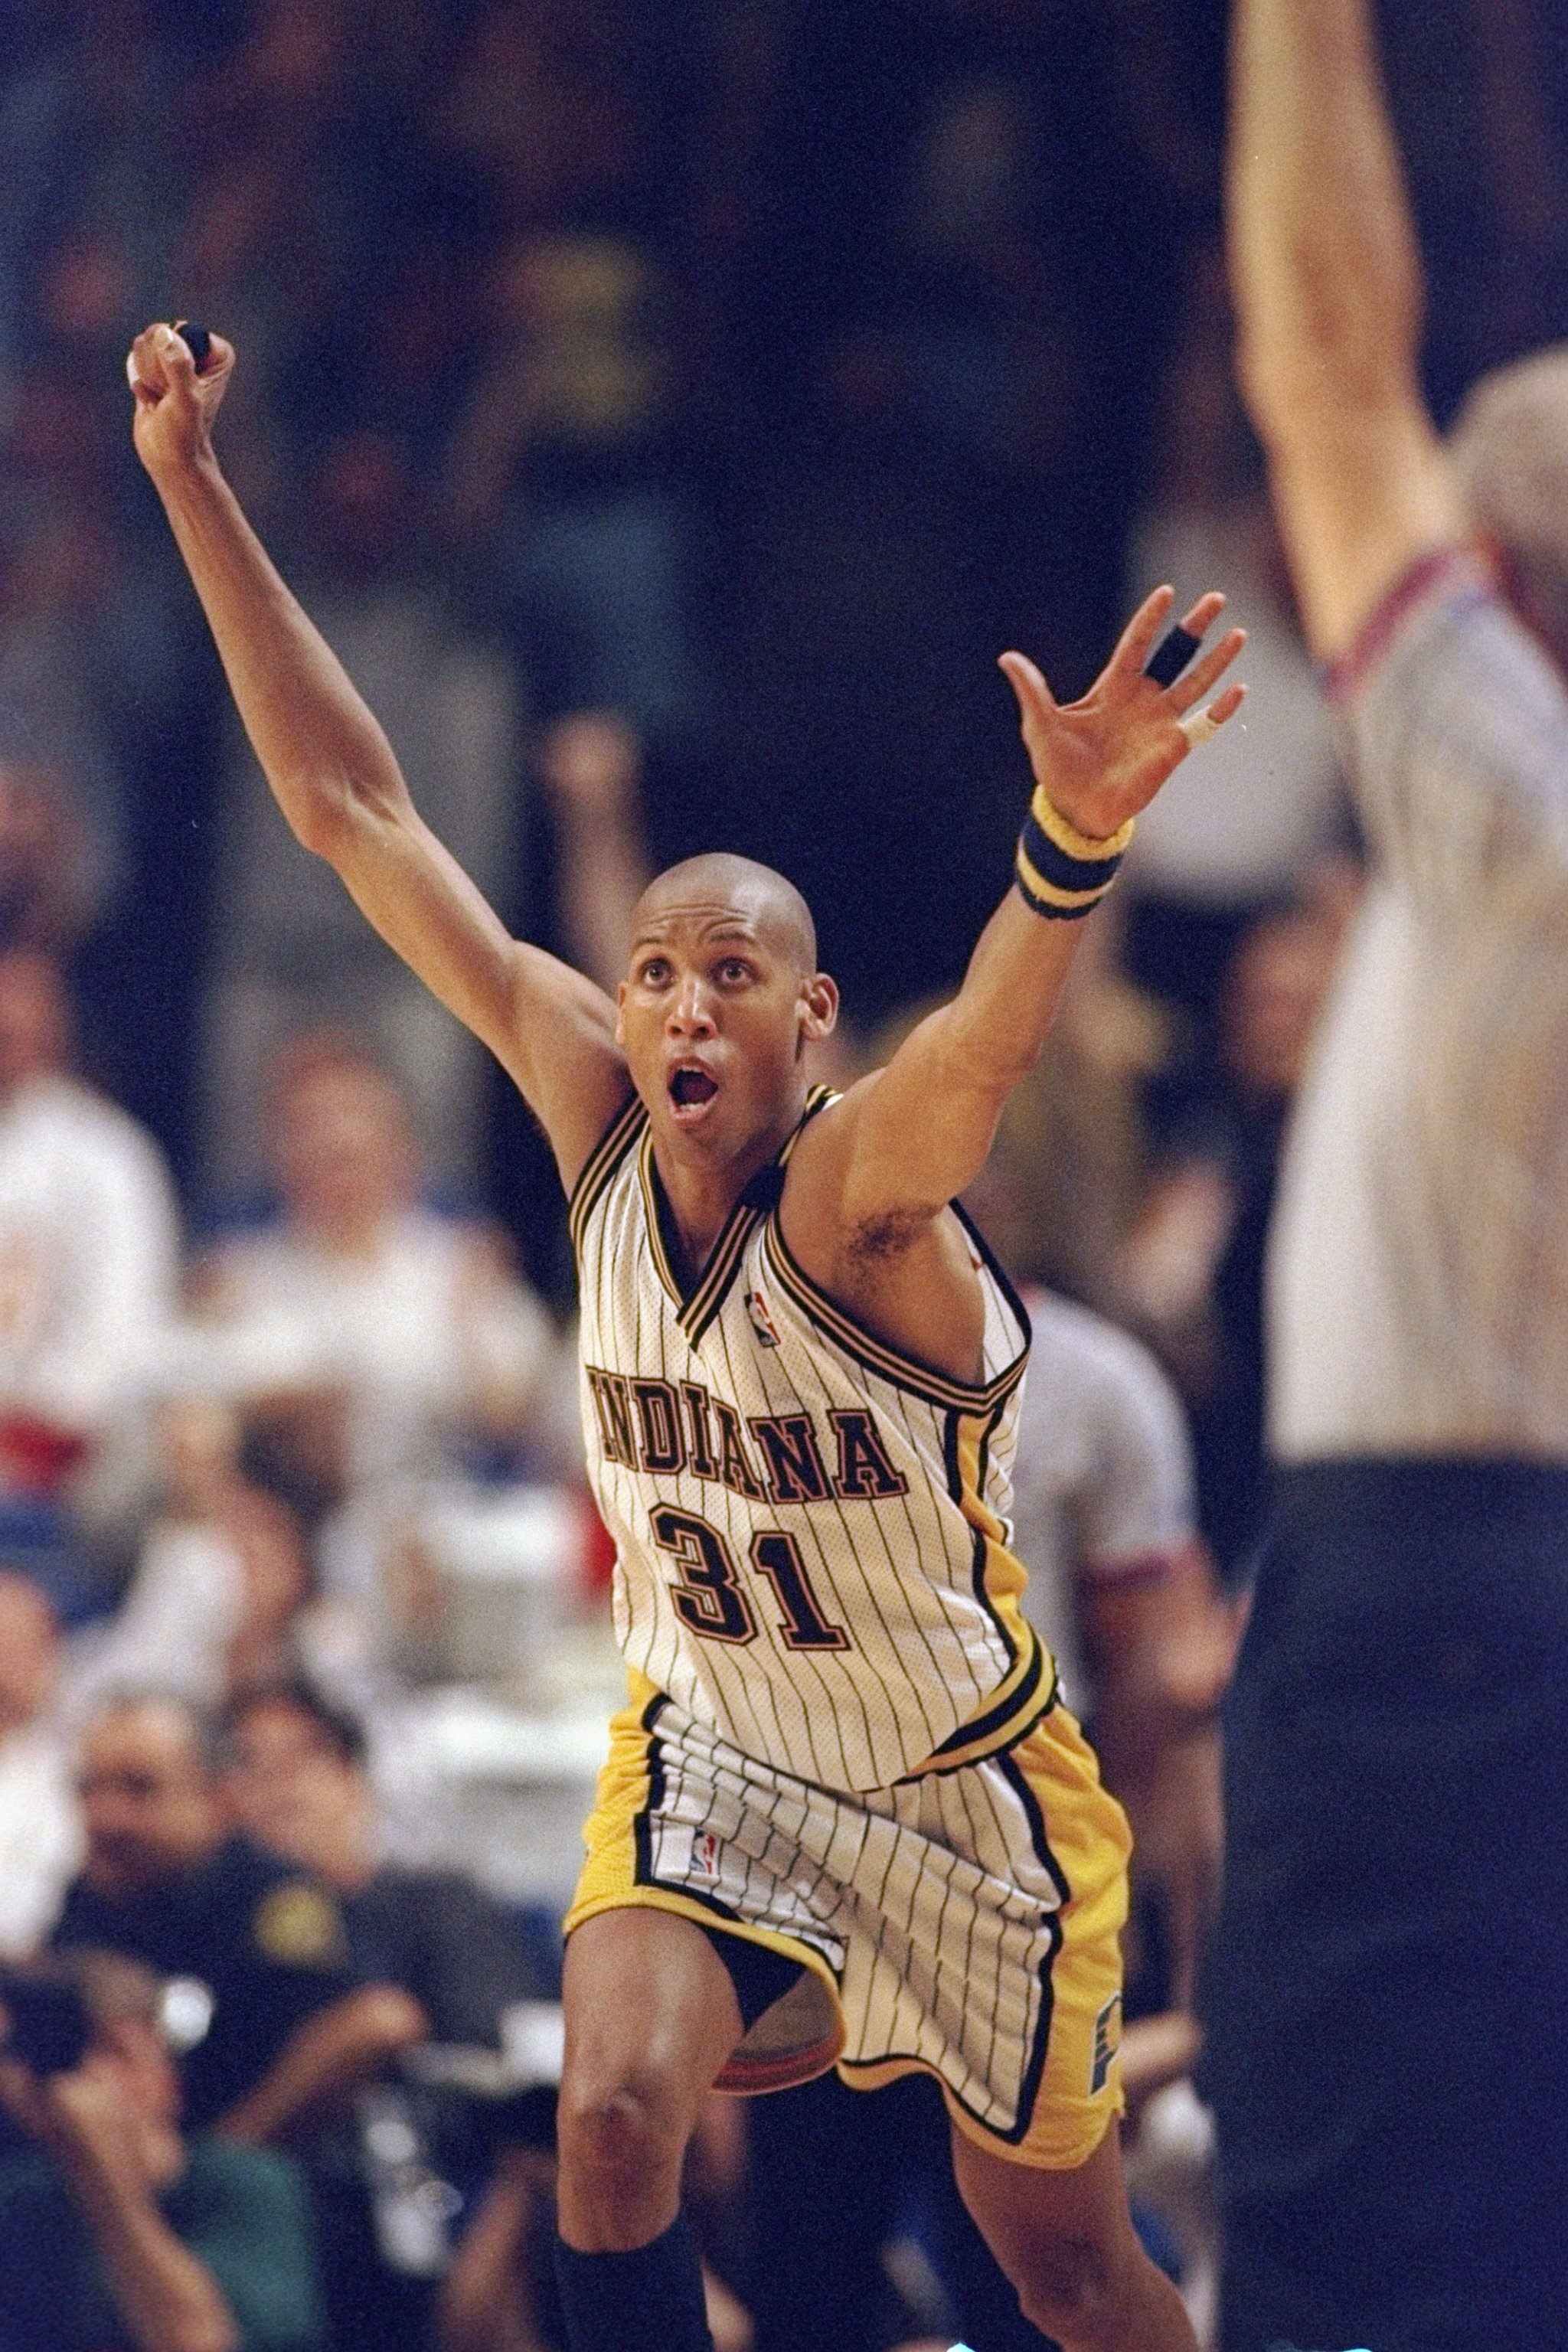 25 May 1998: Reggie Miller #31 of the Indiana Pacers celebrates during an Eastern Conference Final game against the Chicago Bulls at the Market Square Arena in Indianapolis, Indiana. The Pacers defeated the Bulls 96-94.